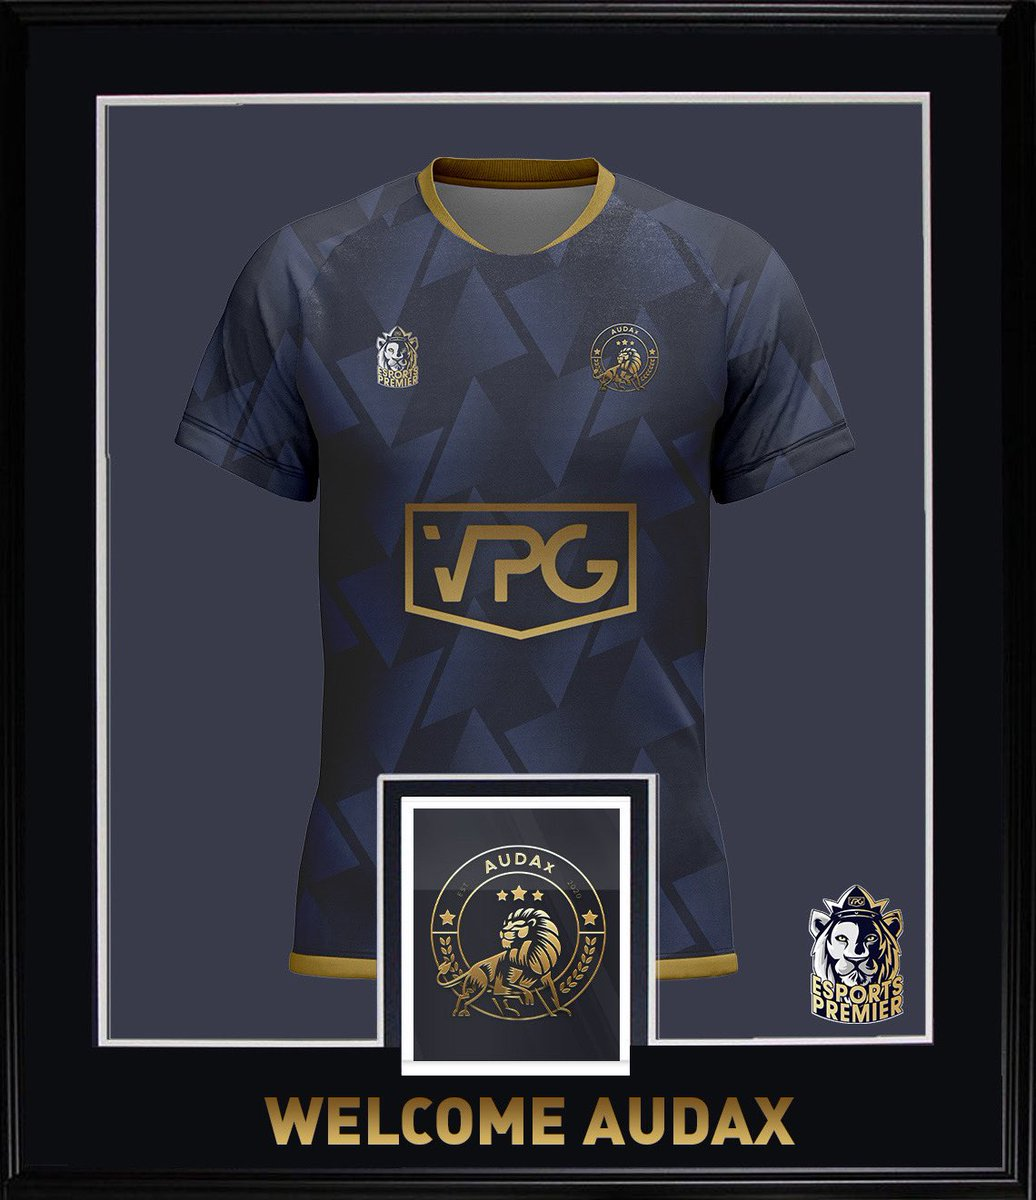 🤩 Welcome @Audax__ into the @VPGPremier !   🌍 Nationality: 🇬🇧   🏆 Champions of the Premier South, now looking to win the Esports Premier. A lot of talent within the team that can definitely challenge! Watch out for the name 🦁   #Audax #FIFA21 #ProClubs #VPG https://t.co/D52pIk2FvT